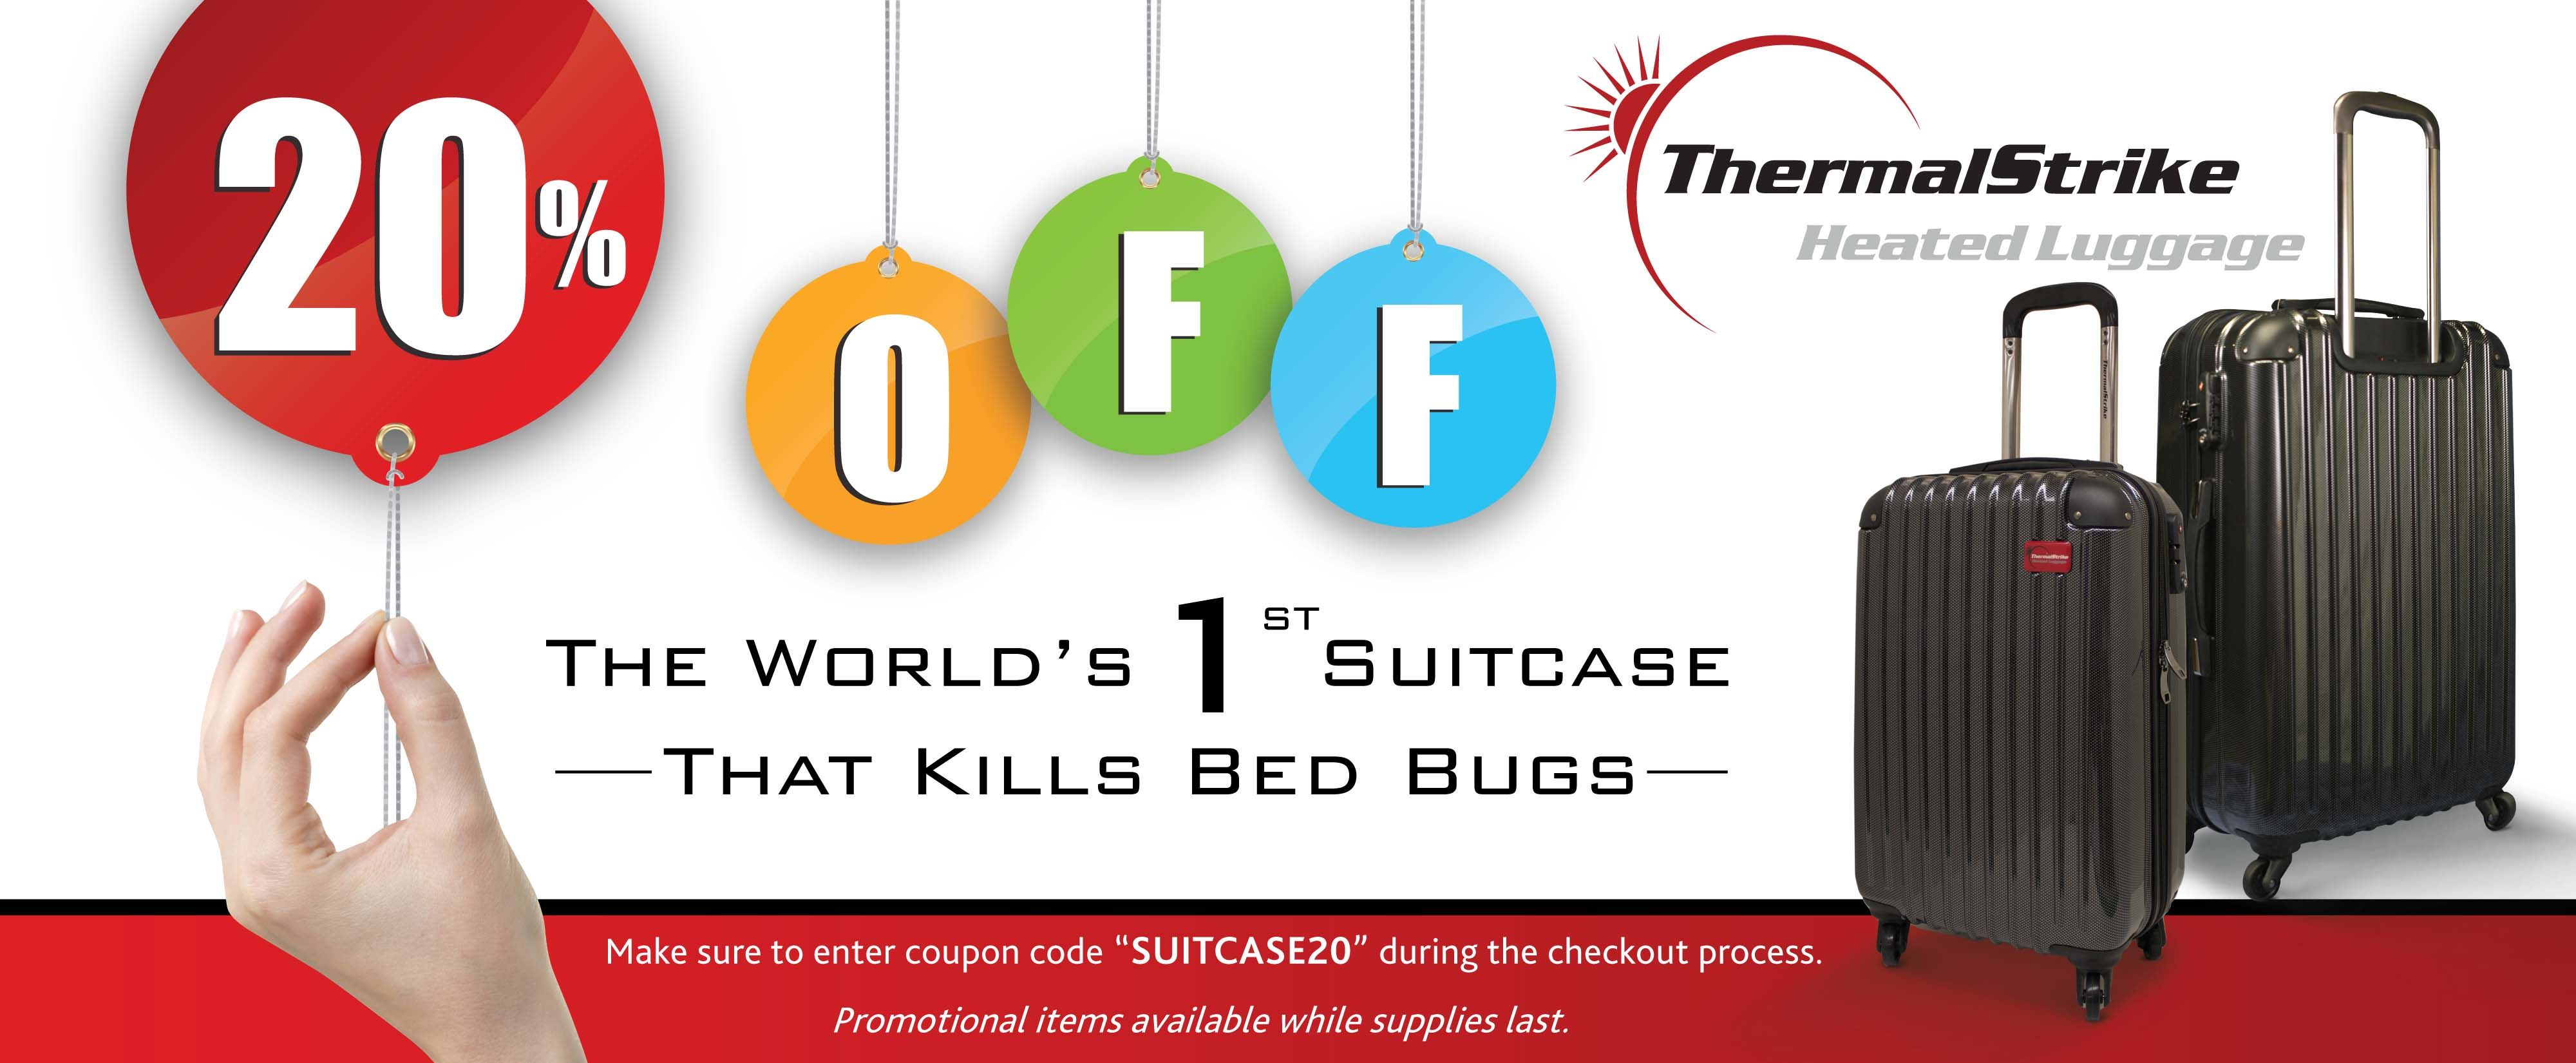 Eliminate Bed Bugs with Heat Bed